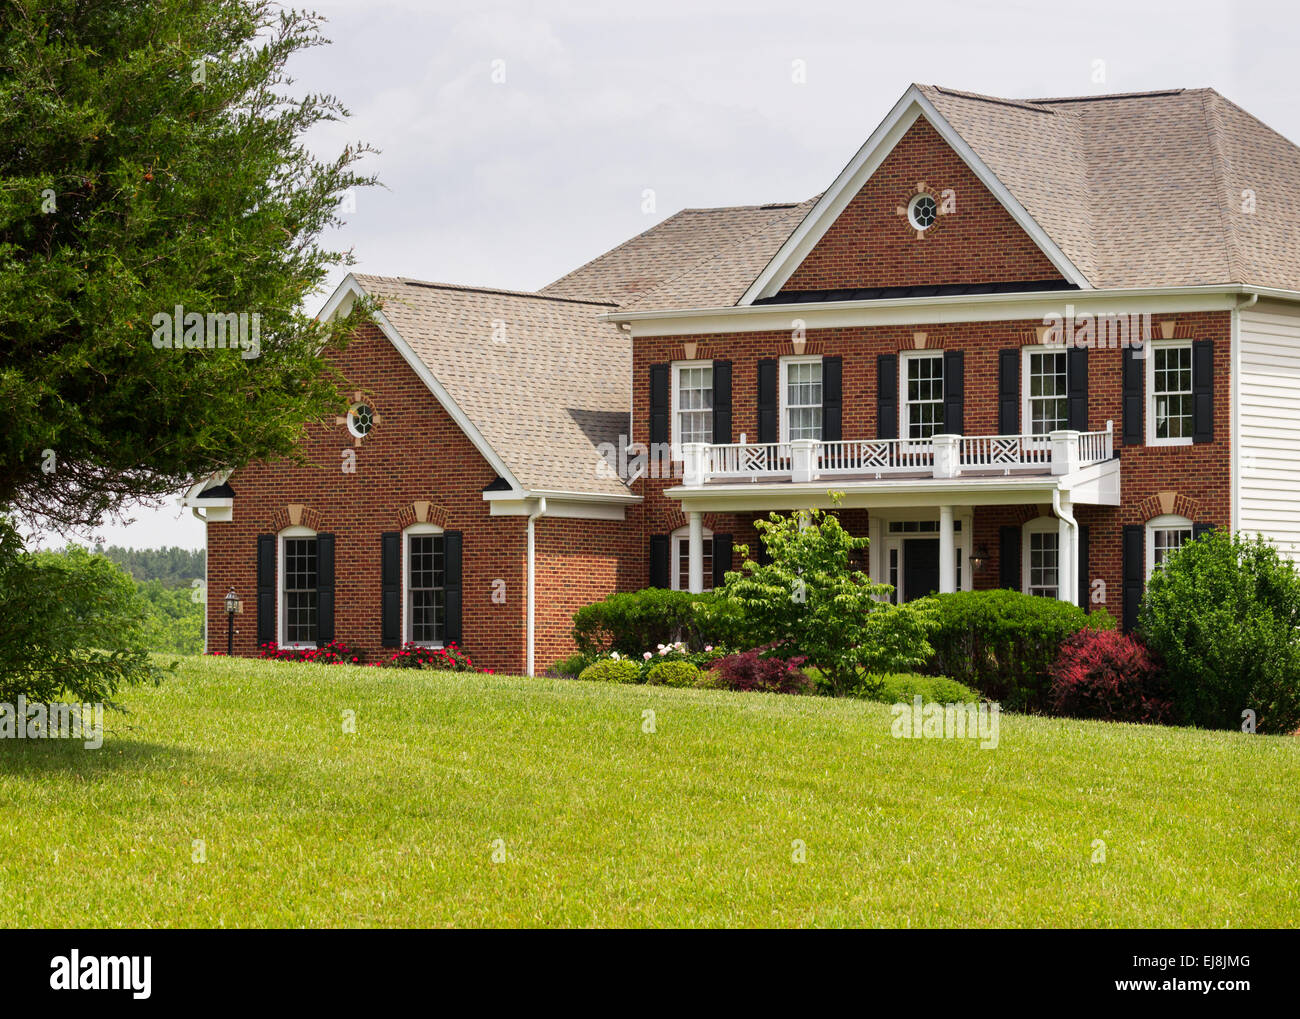 amazing luxury home front elevations. Front elevation large single family home  Stock Image Exterior Elevation Luxury Home Photos